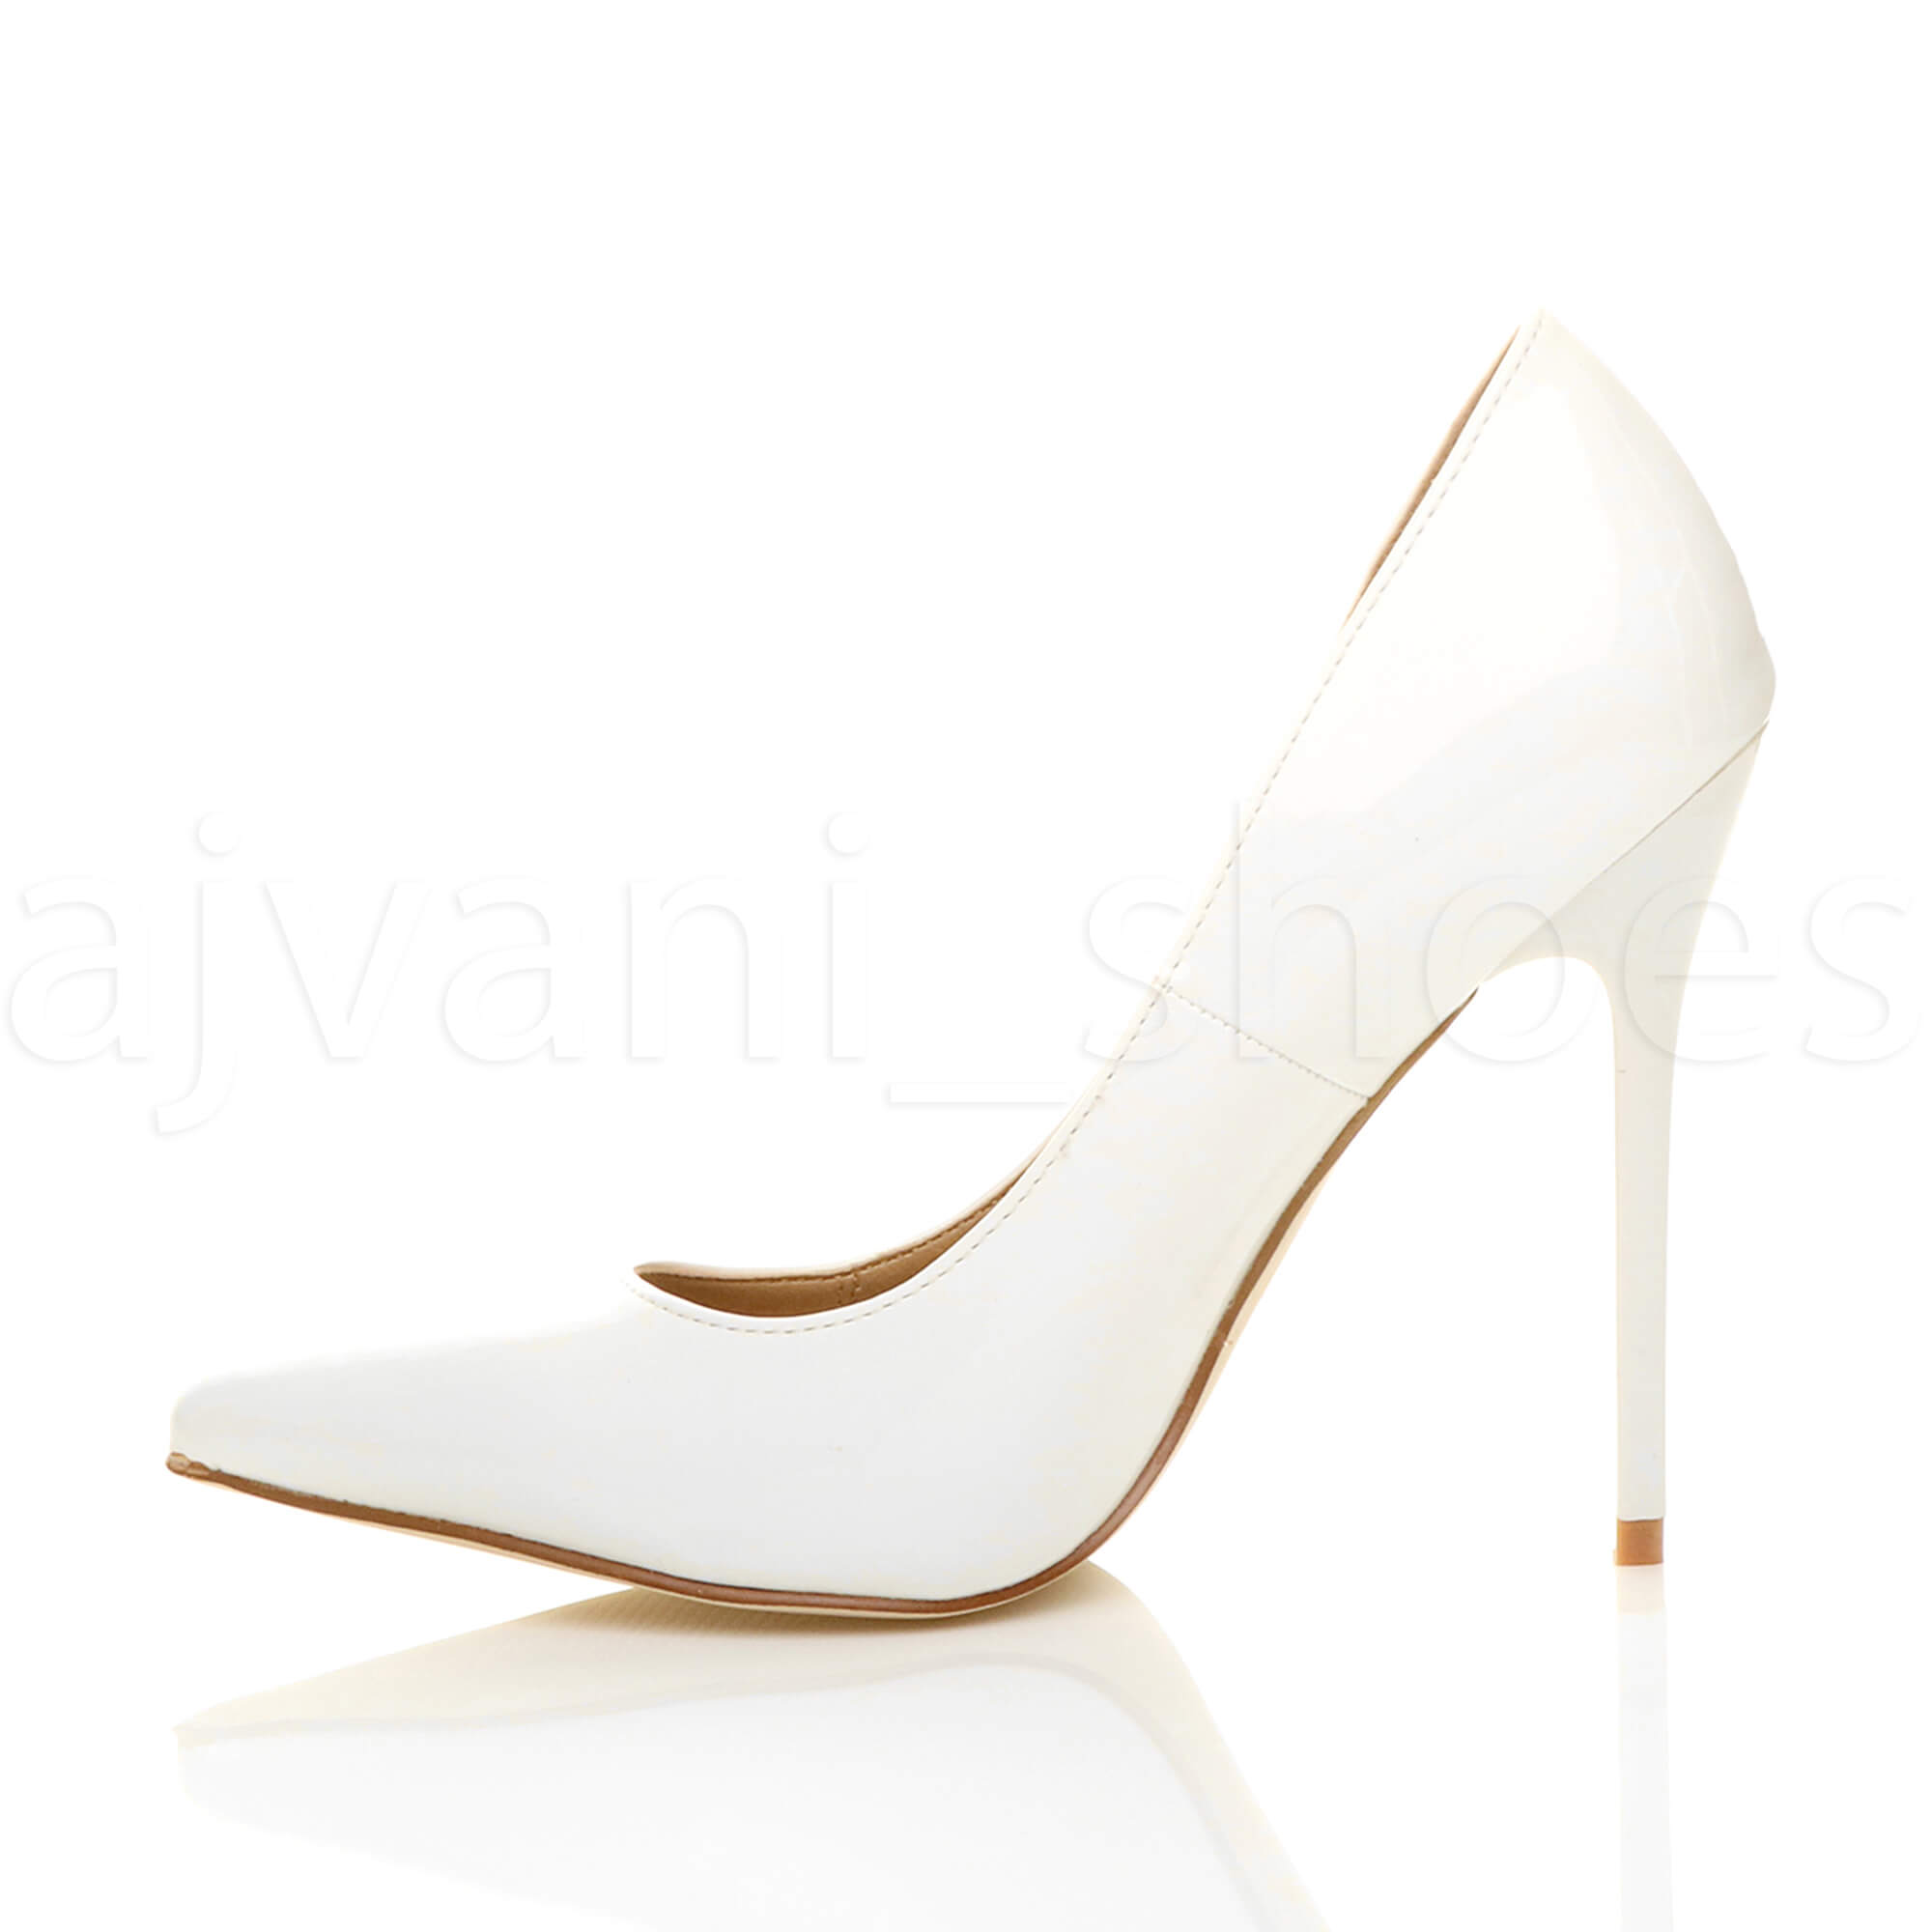 WOMENS-LADIES-HIGH-HEEL-POINTED-CONTRAST-COURT-SMART-PARTY-WORK-SHOES-PUMPS-SIZE thumbnail 225